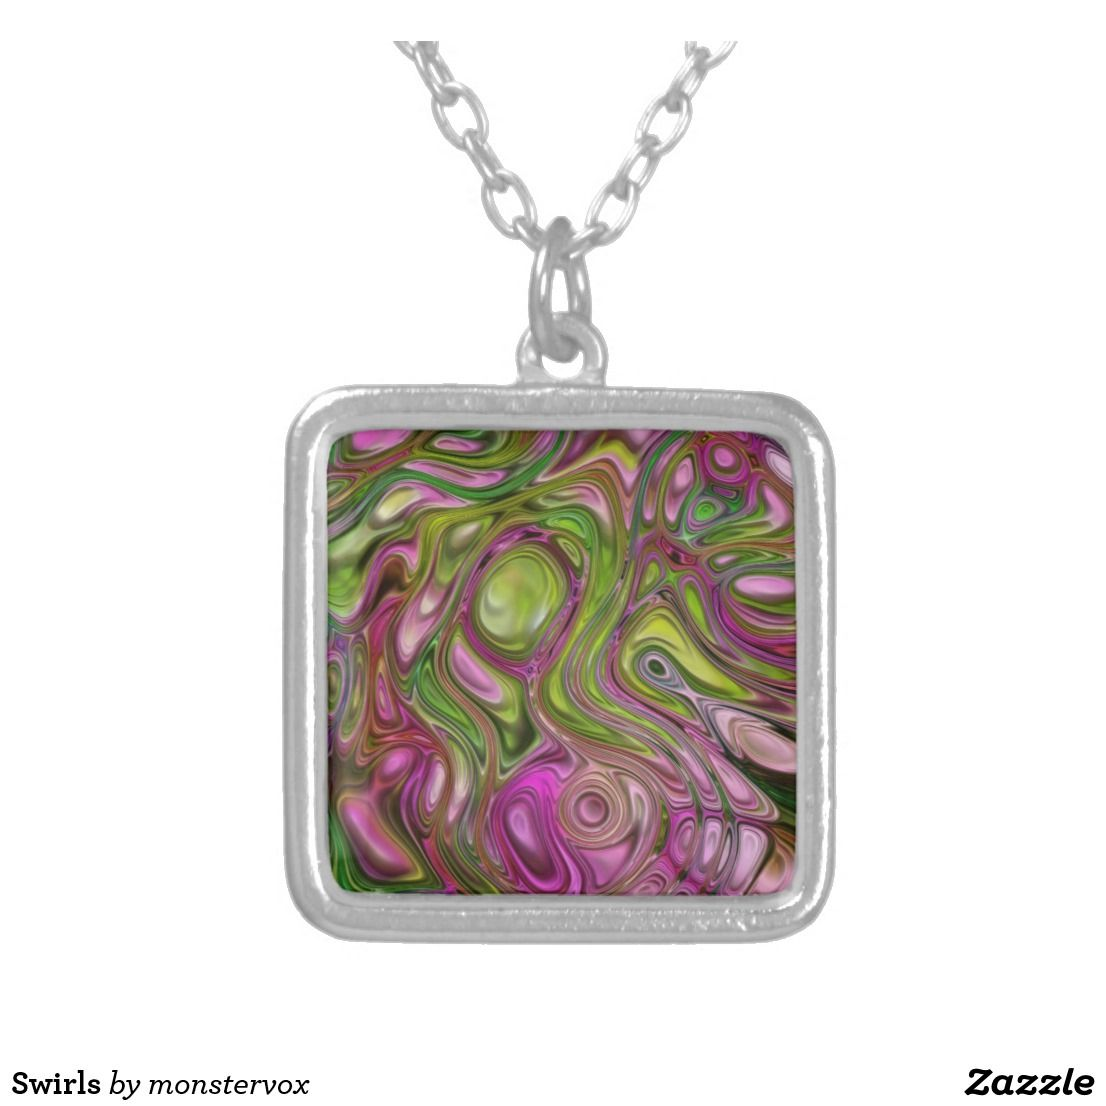 Swirls Silver Plated Necklace #Swirl #Decorative #Design #Zazzle #Jewelry #Fashion #Necklace